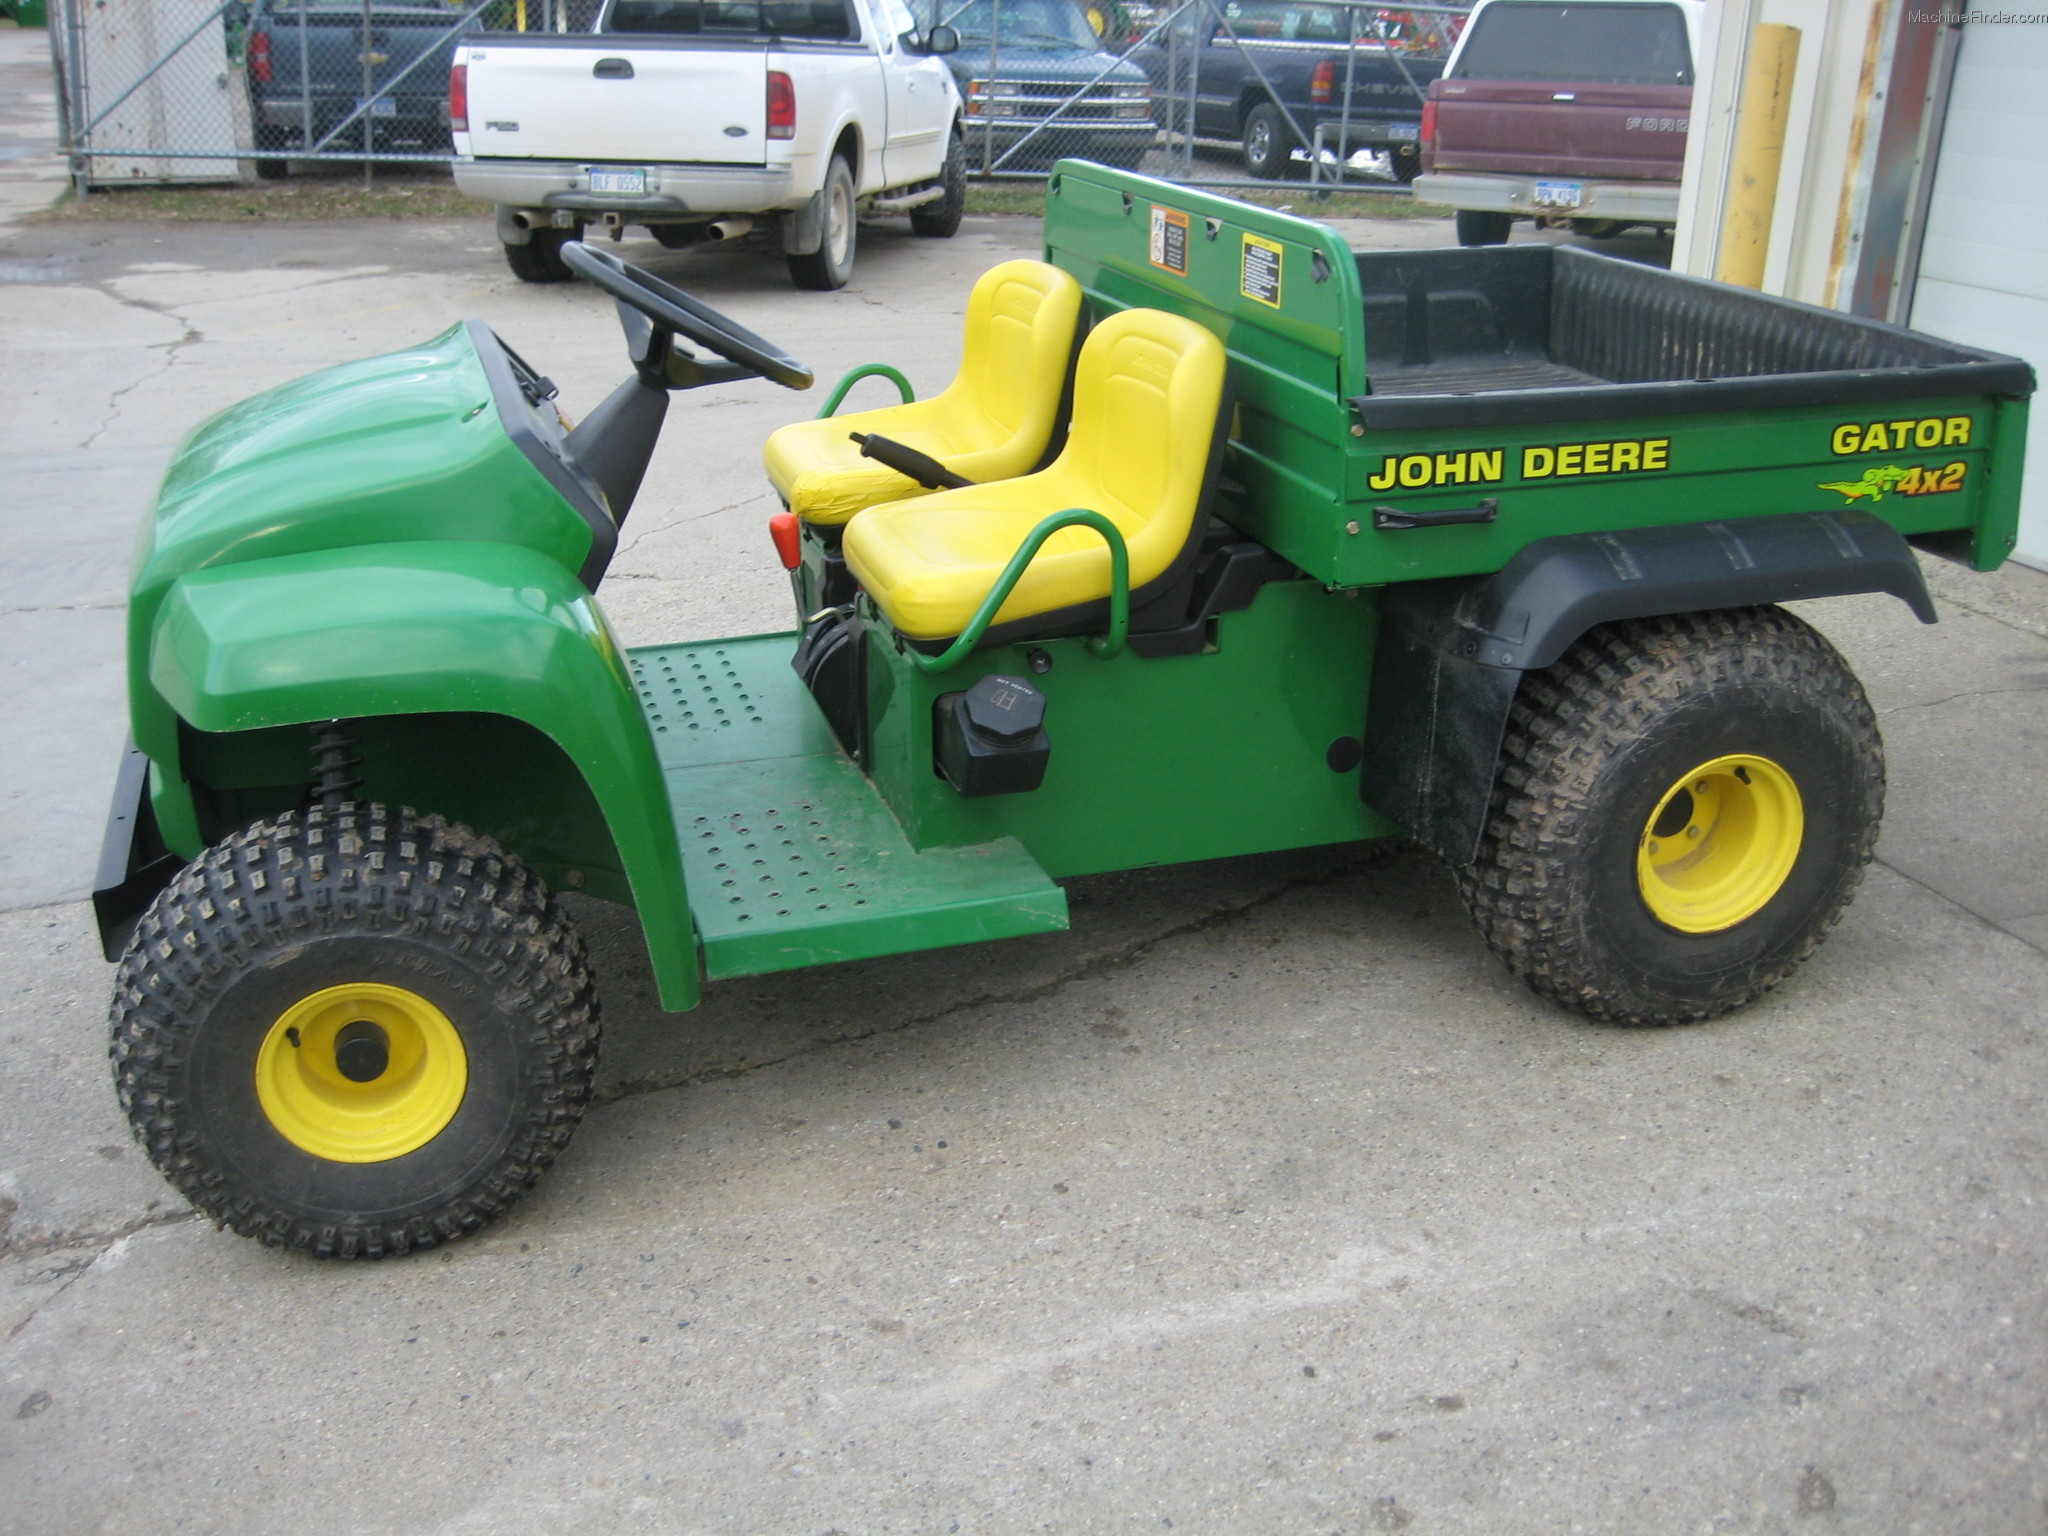 John Deere Gator 4x2 Gators Www Hpx Fuel Pump Wiring Diagram 2000 Atvs And Machinefinder